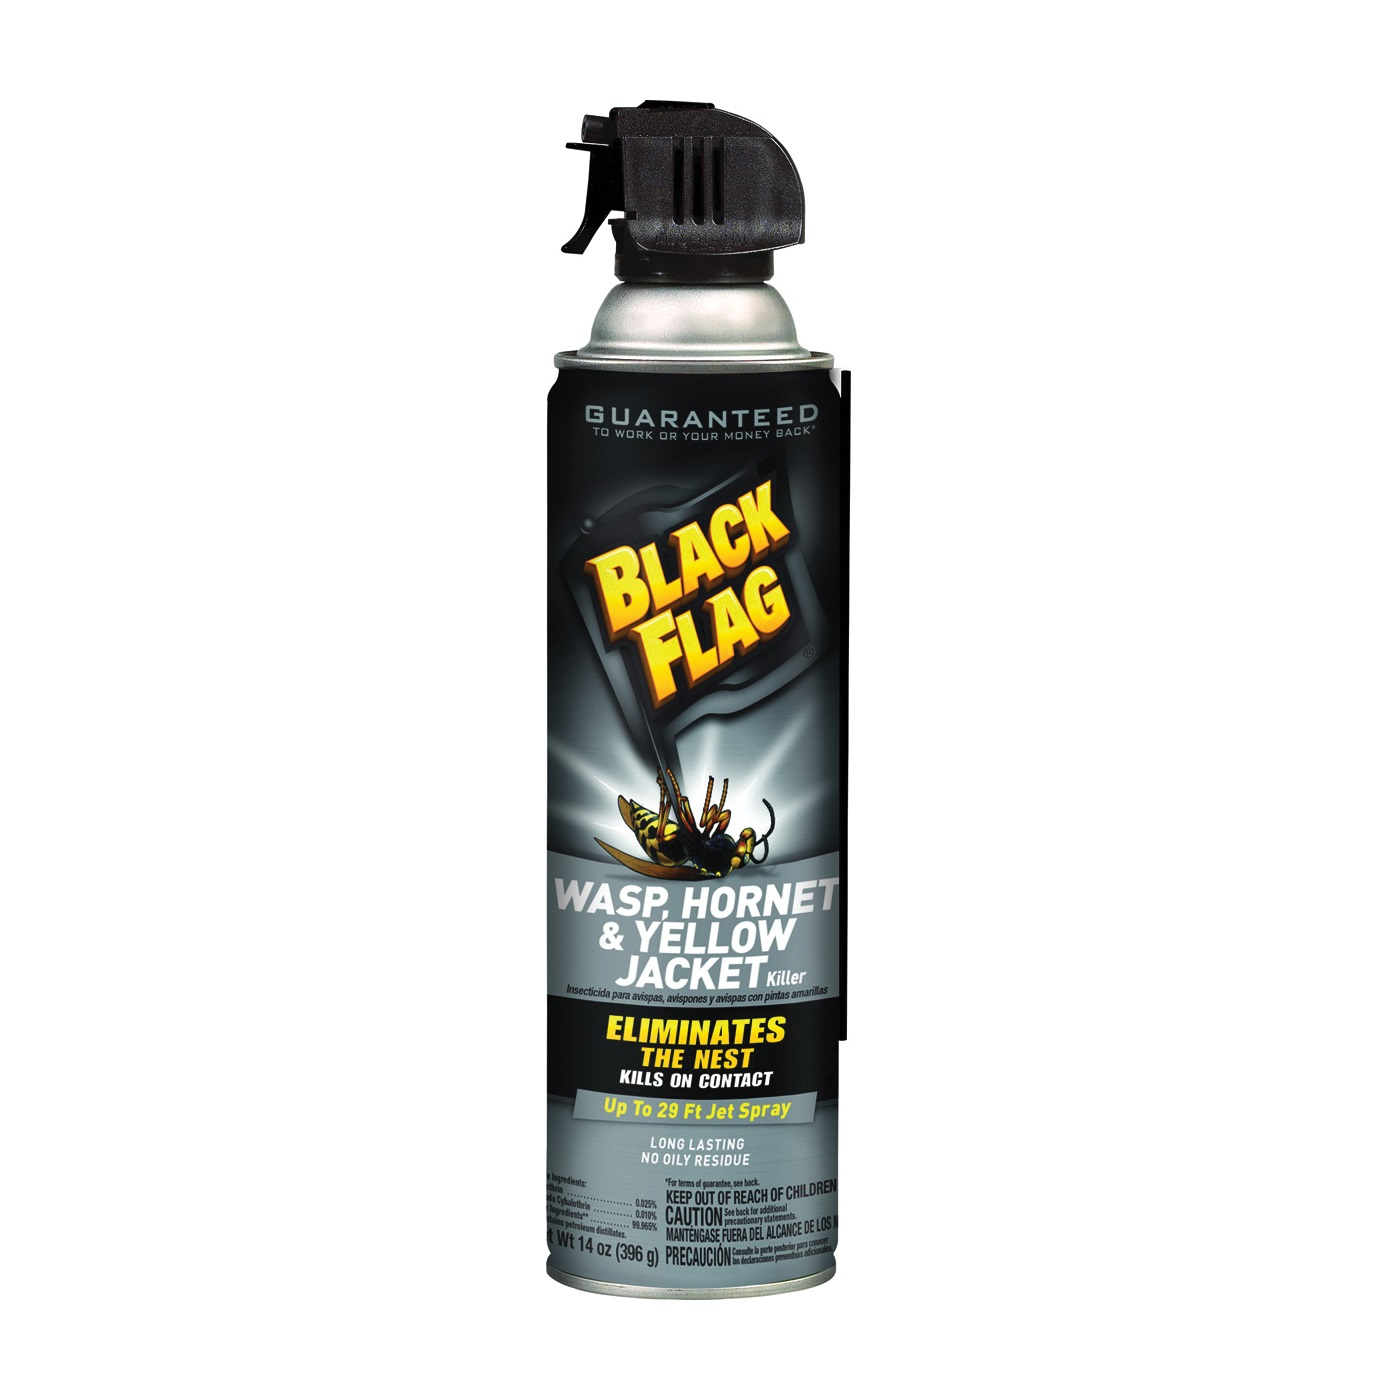 Picture of Black Flag HG-11036 Hornet and Yellow Jacket Killer, Liquid, Spray Application, 14 oz Package, Aerosol Can